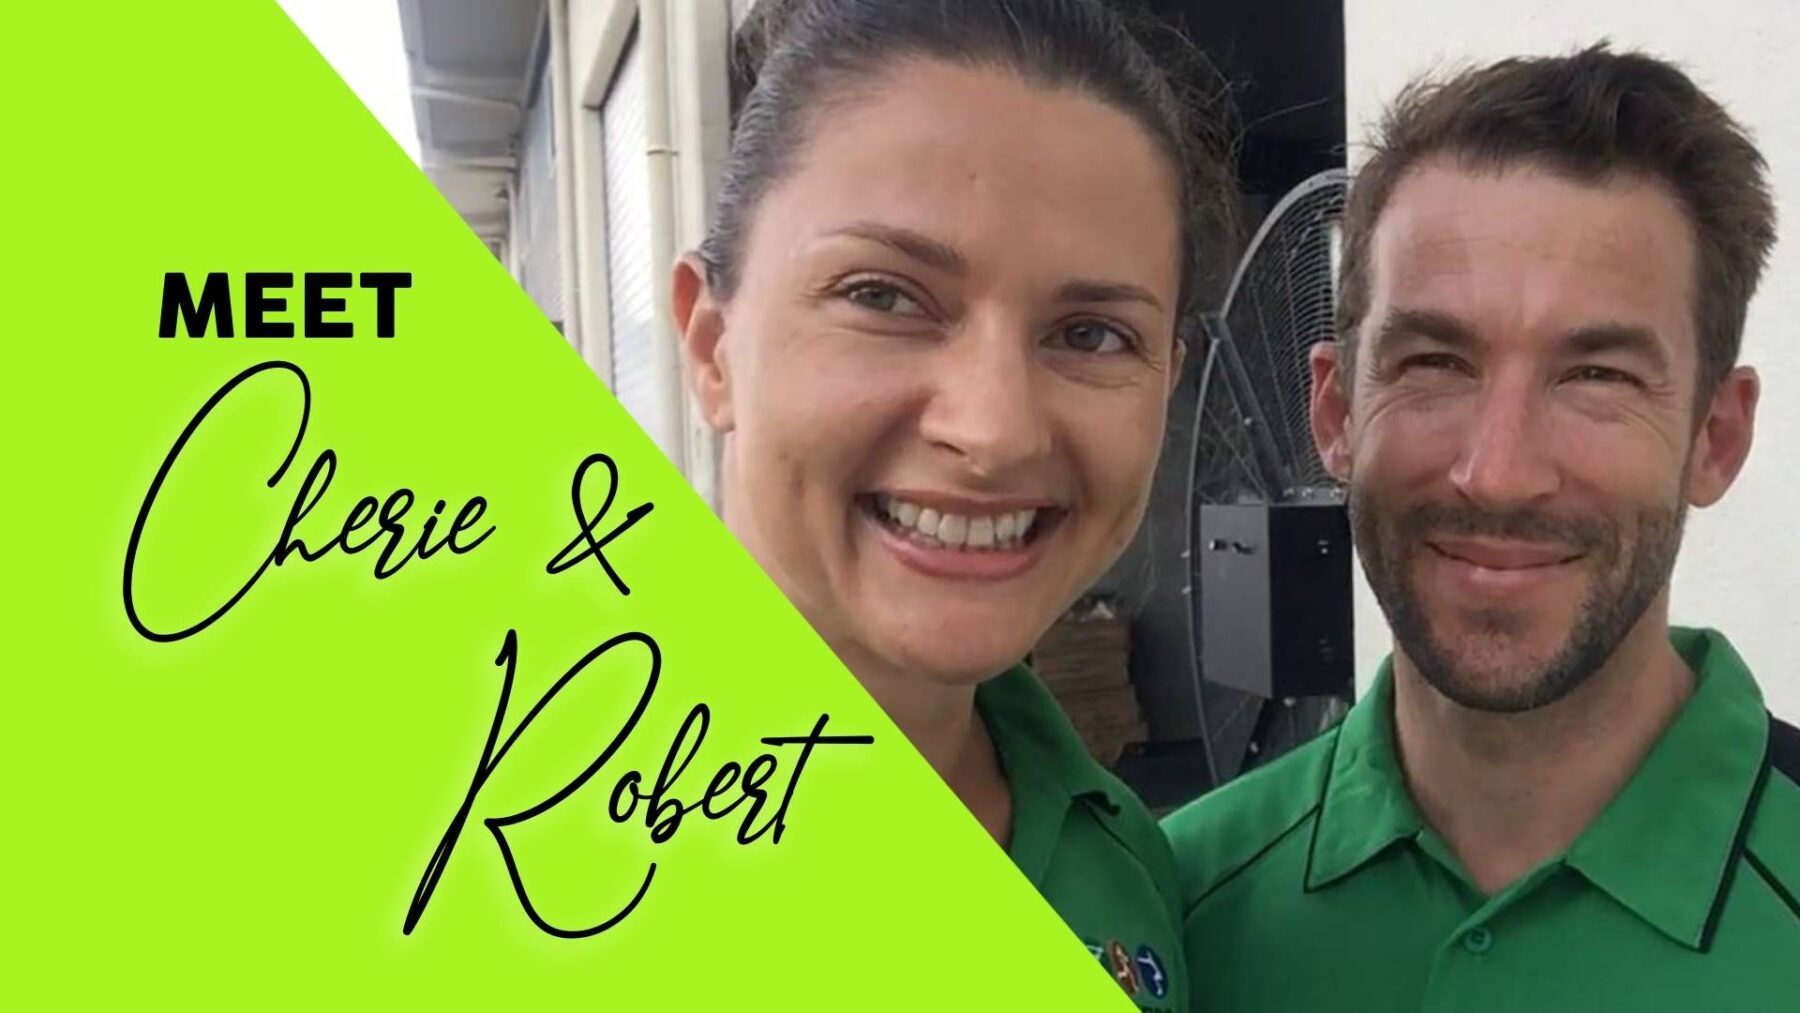 Cherie & Robert Personal Trainers